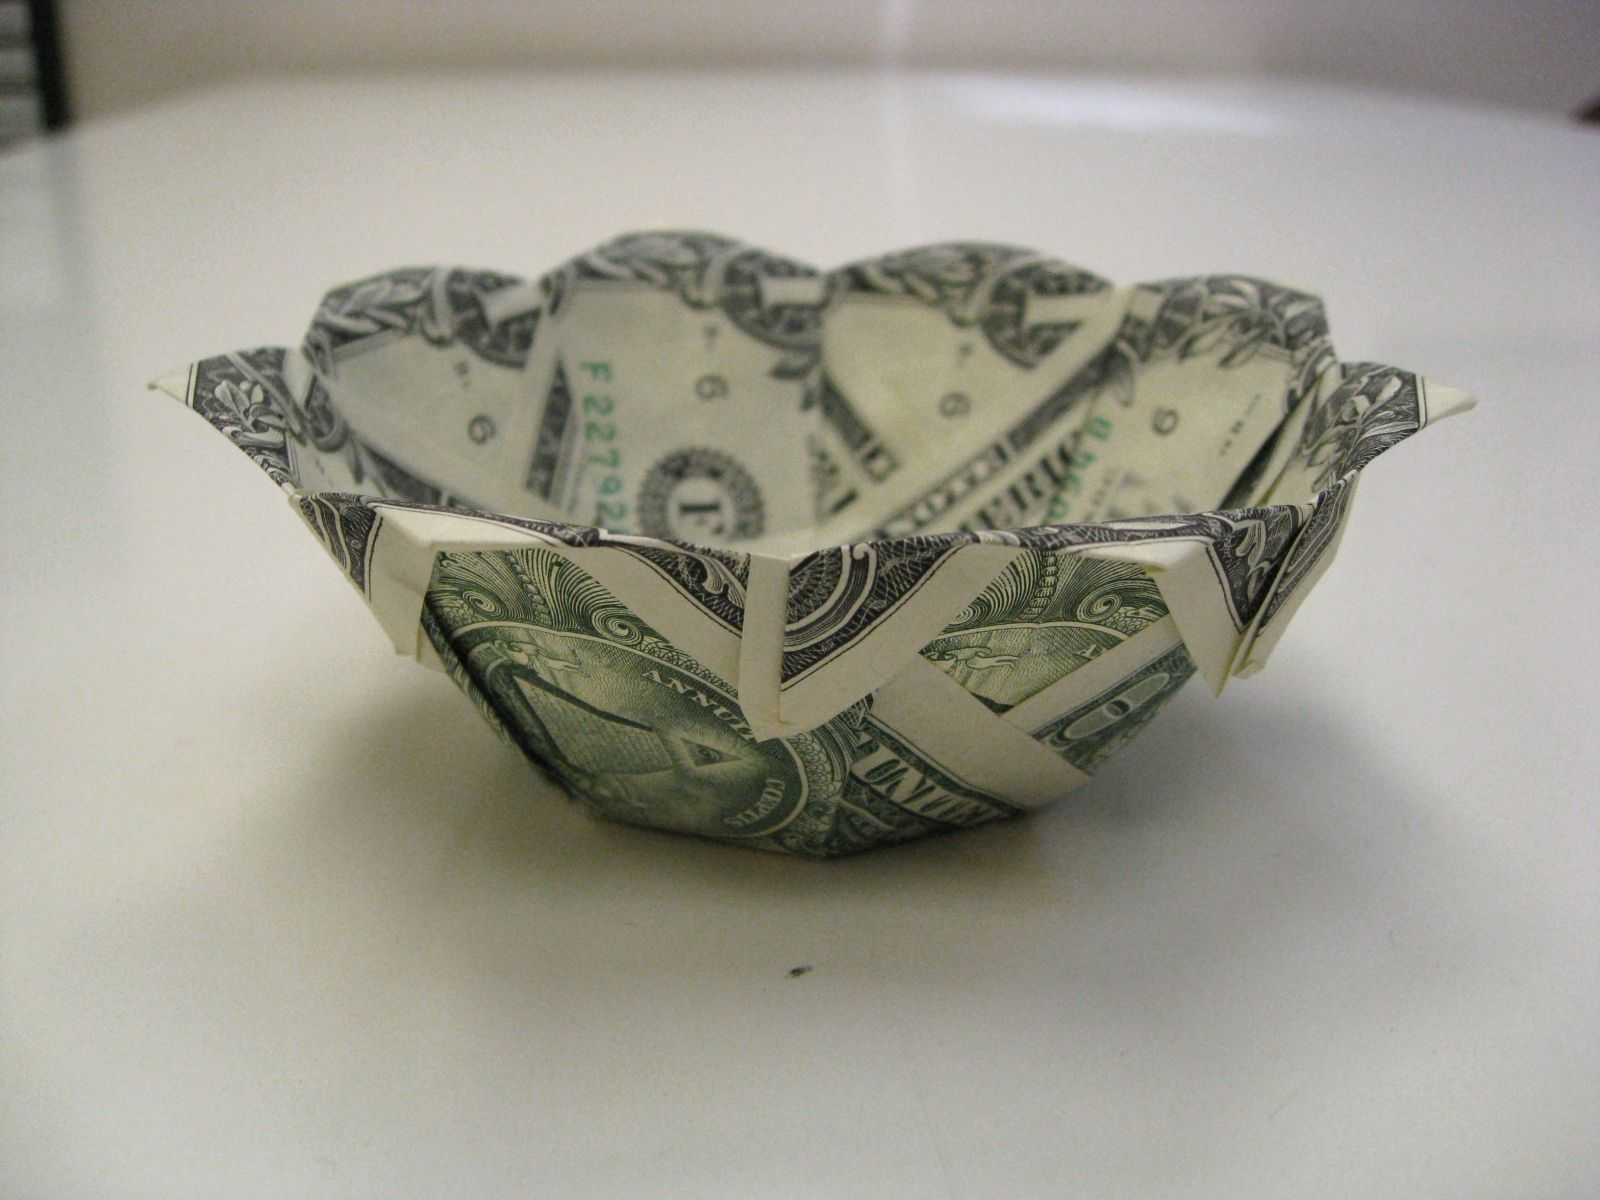 Dollar Money Origami Bowl | Money Dollar Origami ... - photo#12